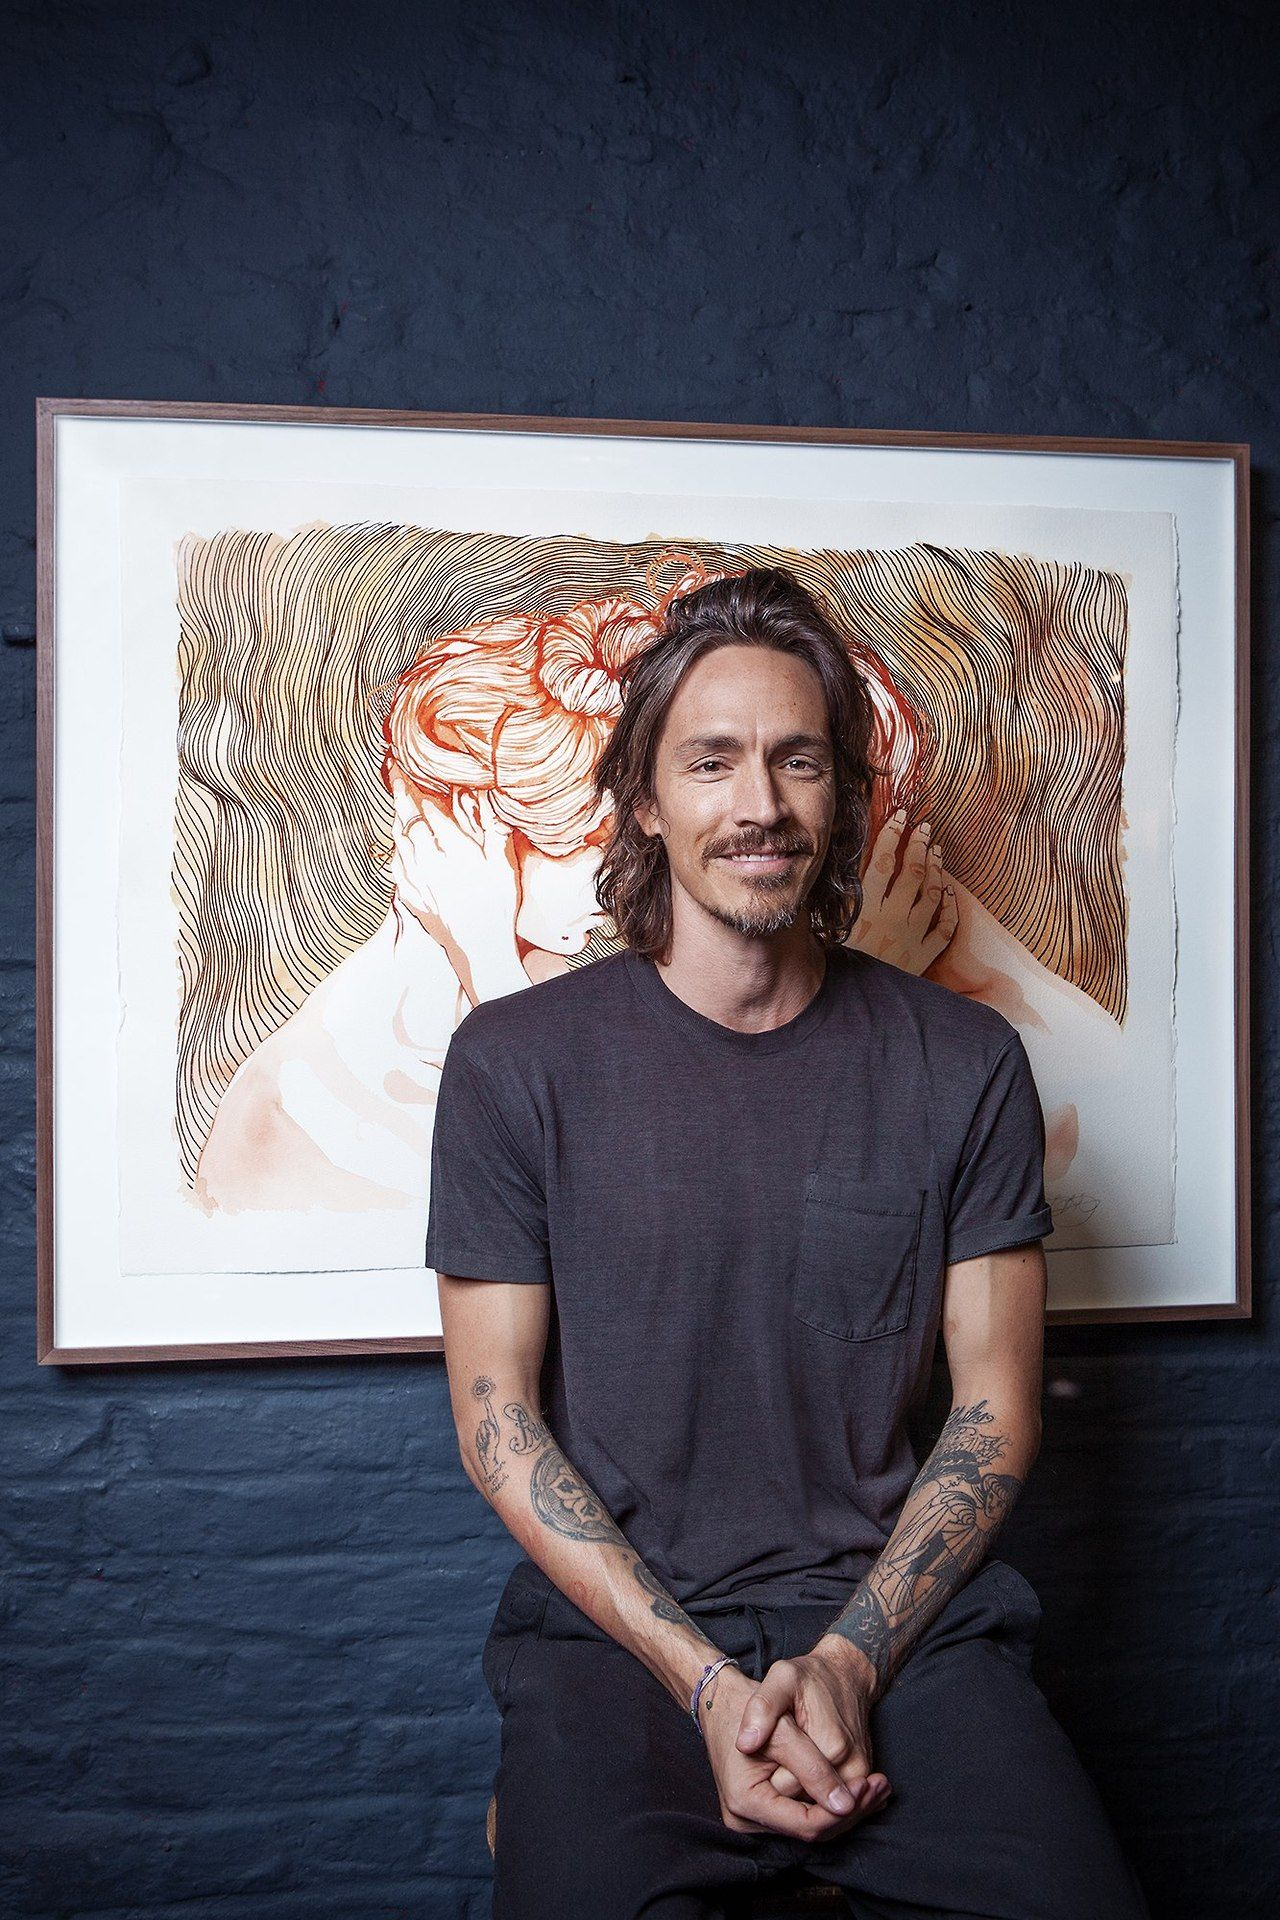 Pin By Molly Boyd On Tattoo Ideas: Pin By ☯ Stormee ☯ On The Fabulous Brandon Boyd